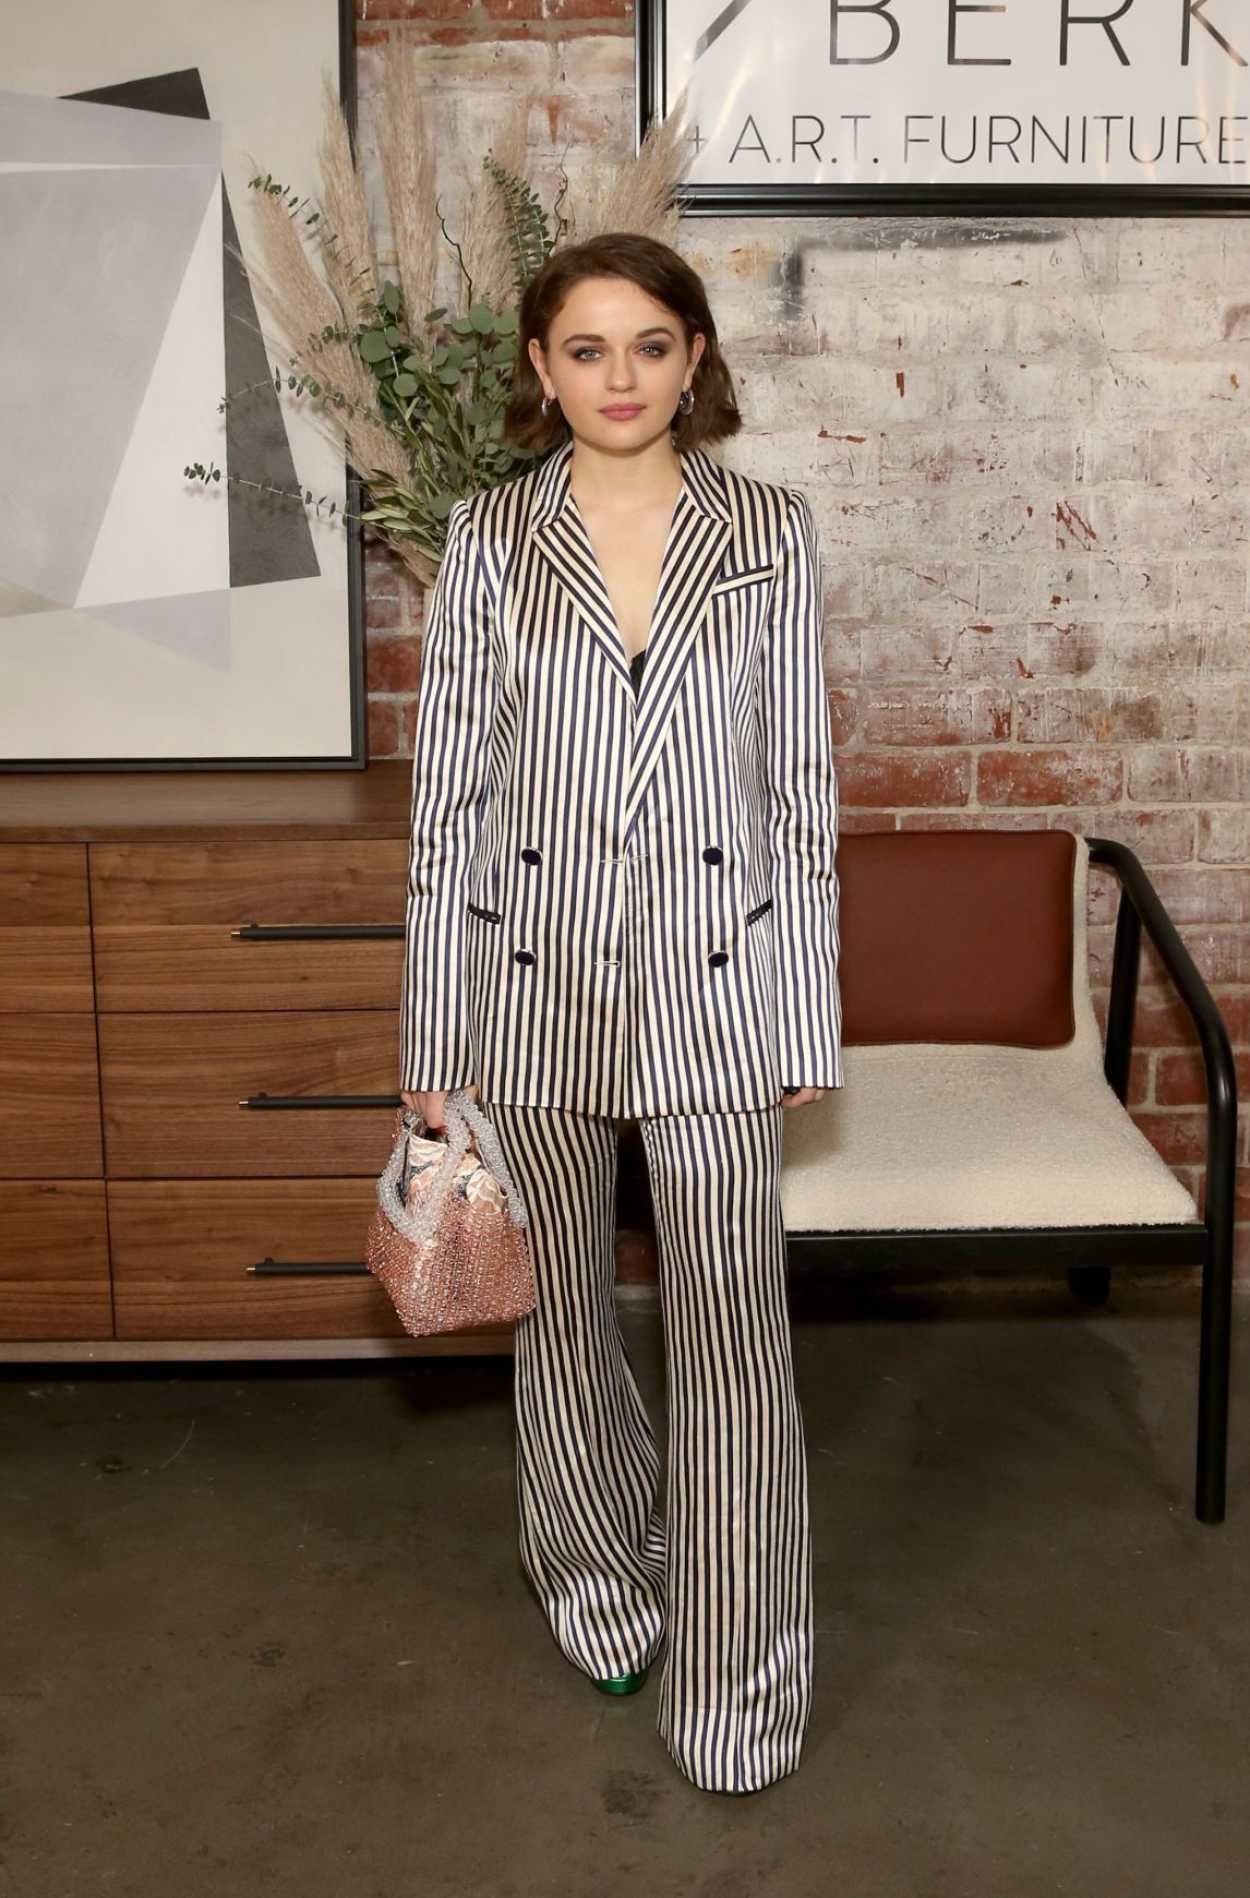 Joey King Attends The Bobby Berk S A R T Furniture Launch Event In La 11 05 2019 Celebsla Com